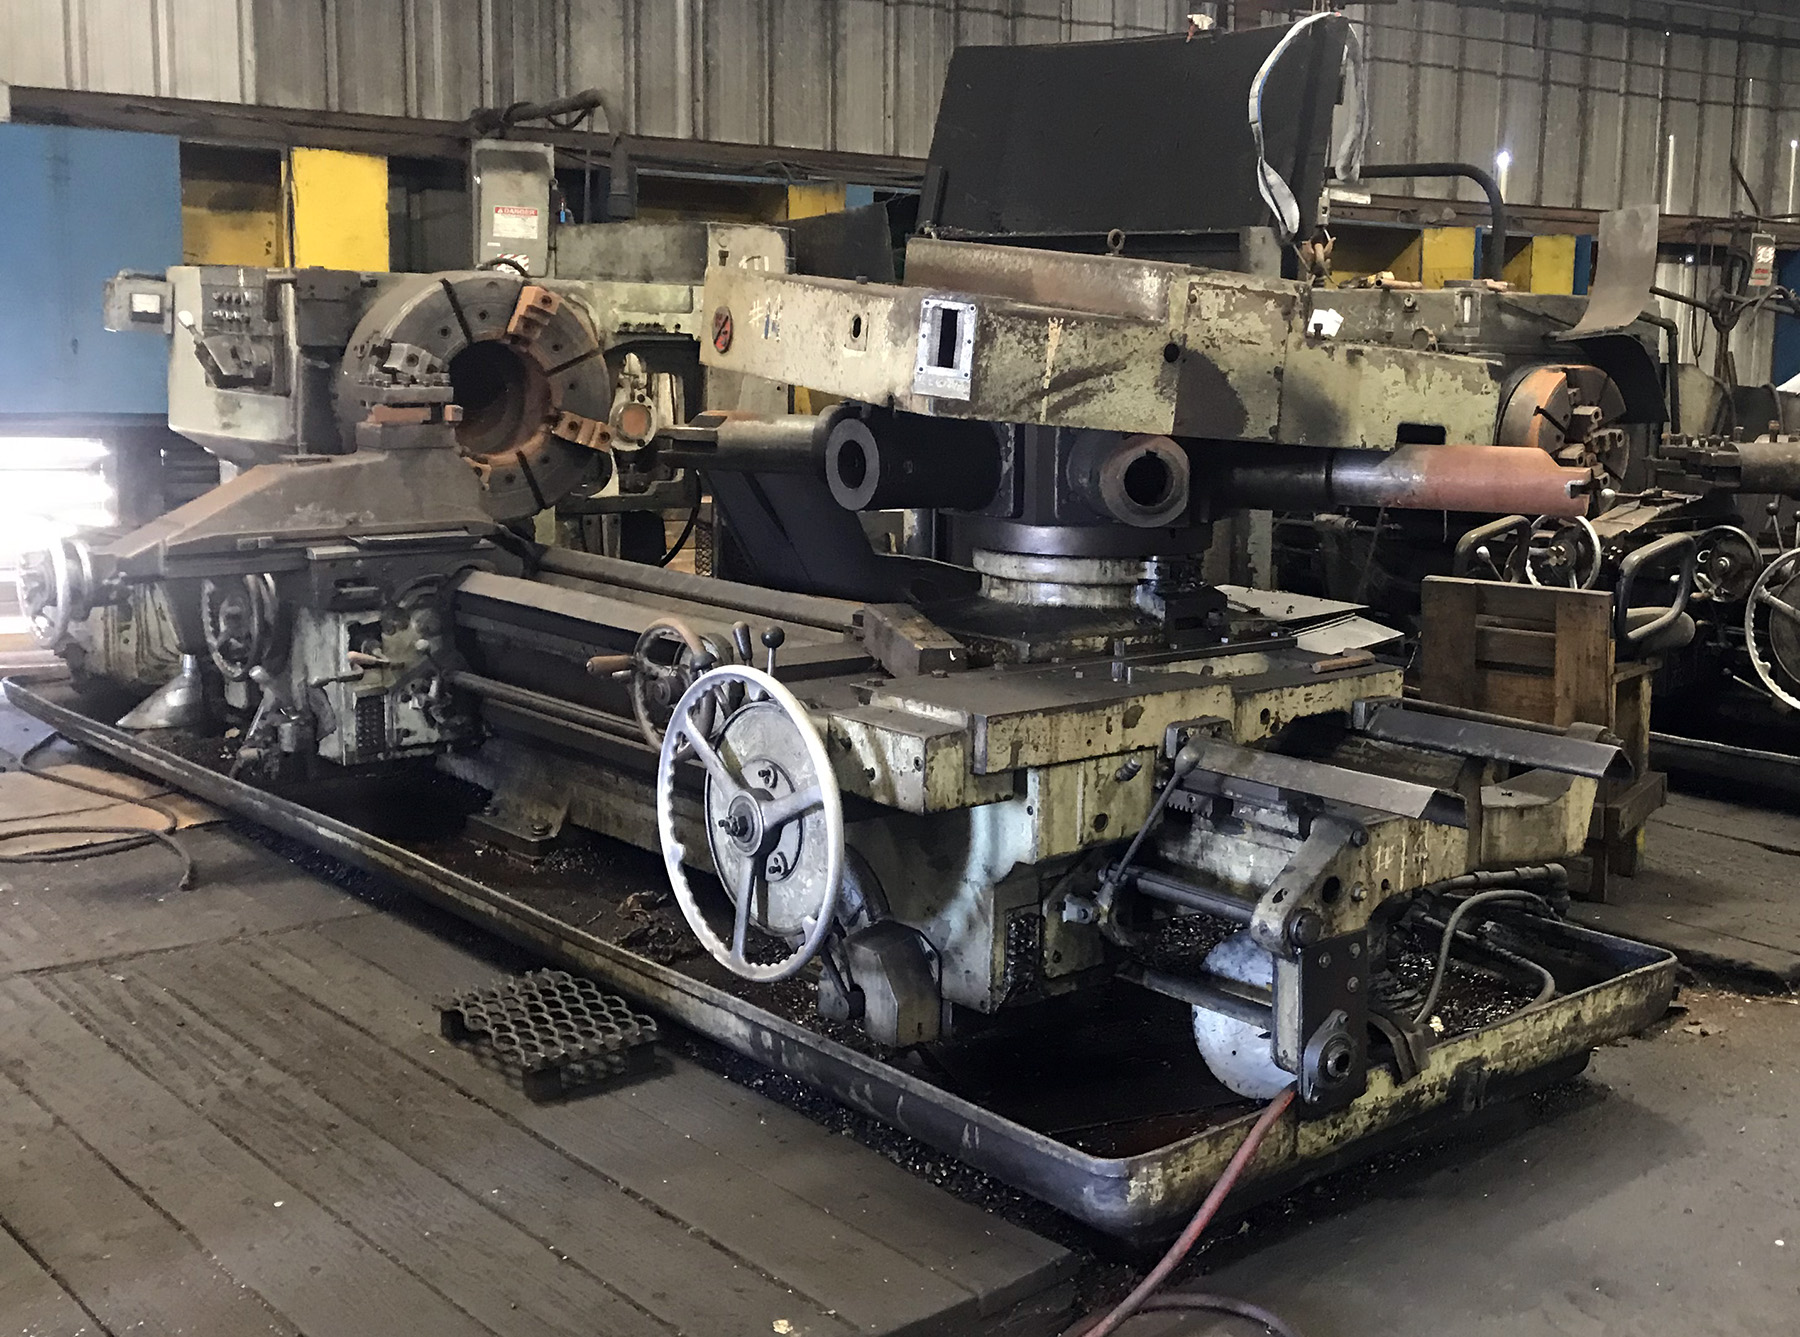 USED, 5A WARNER & SWASEY MODEL M-3870 SQUARE HEAD SADDLE TYPE TURRET LATHE WITH CROSS SLIDING REAR TURRET